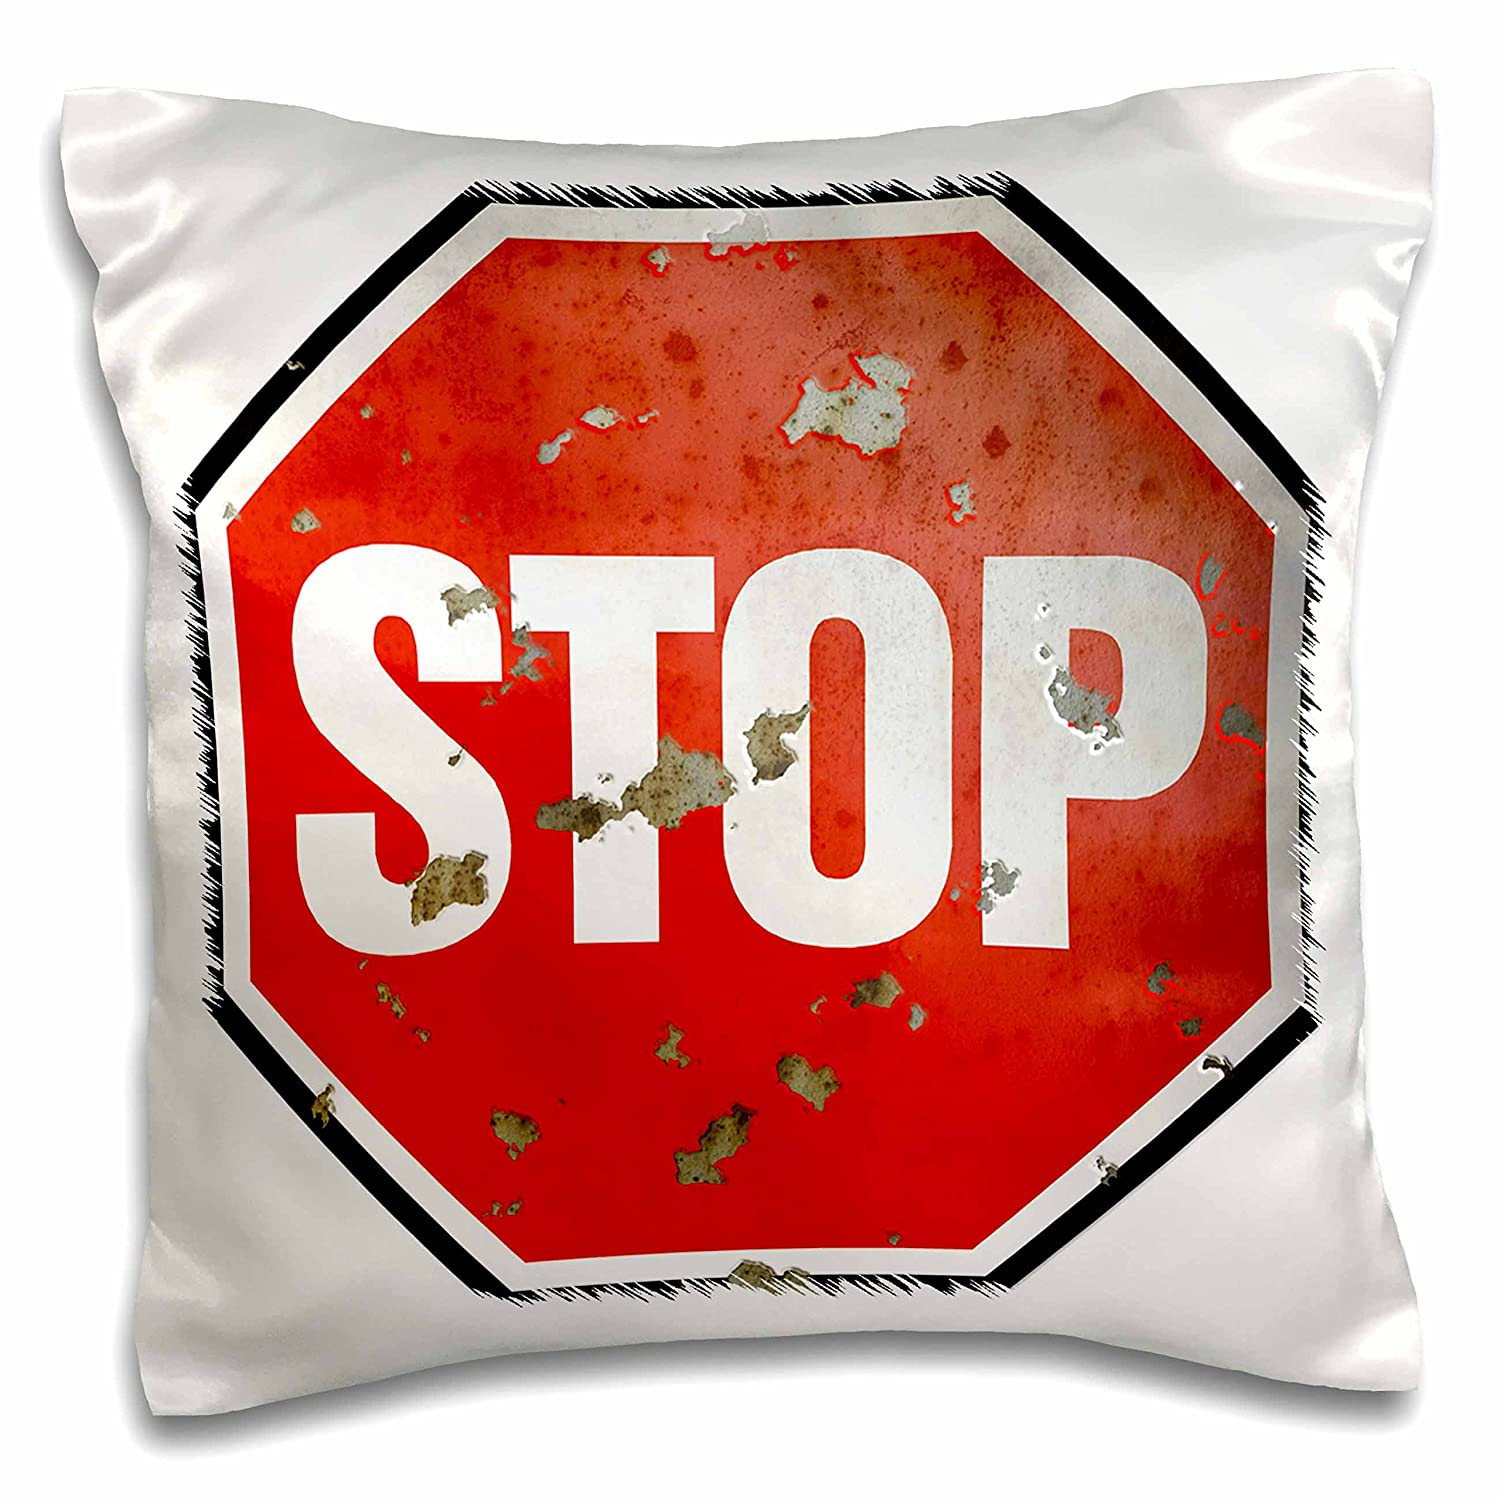 16 by 16 3dRose pc/_24332/_1 Stop Grunge Red Sign On White Background-Pillow Case